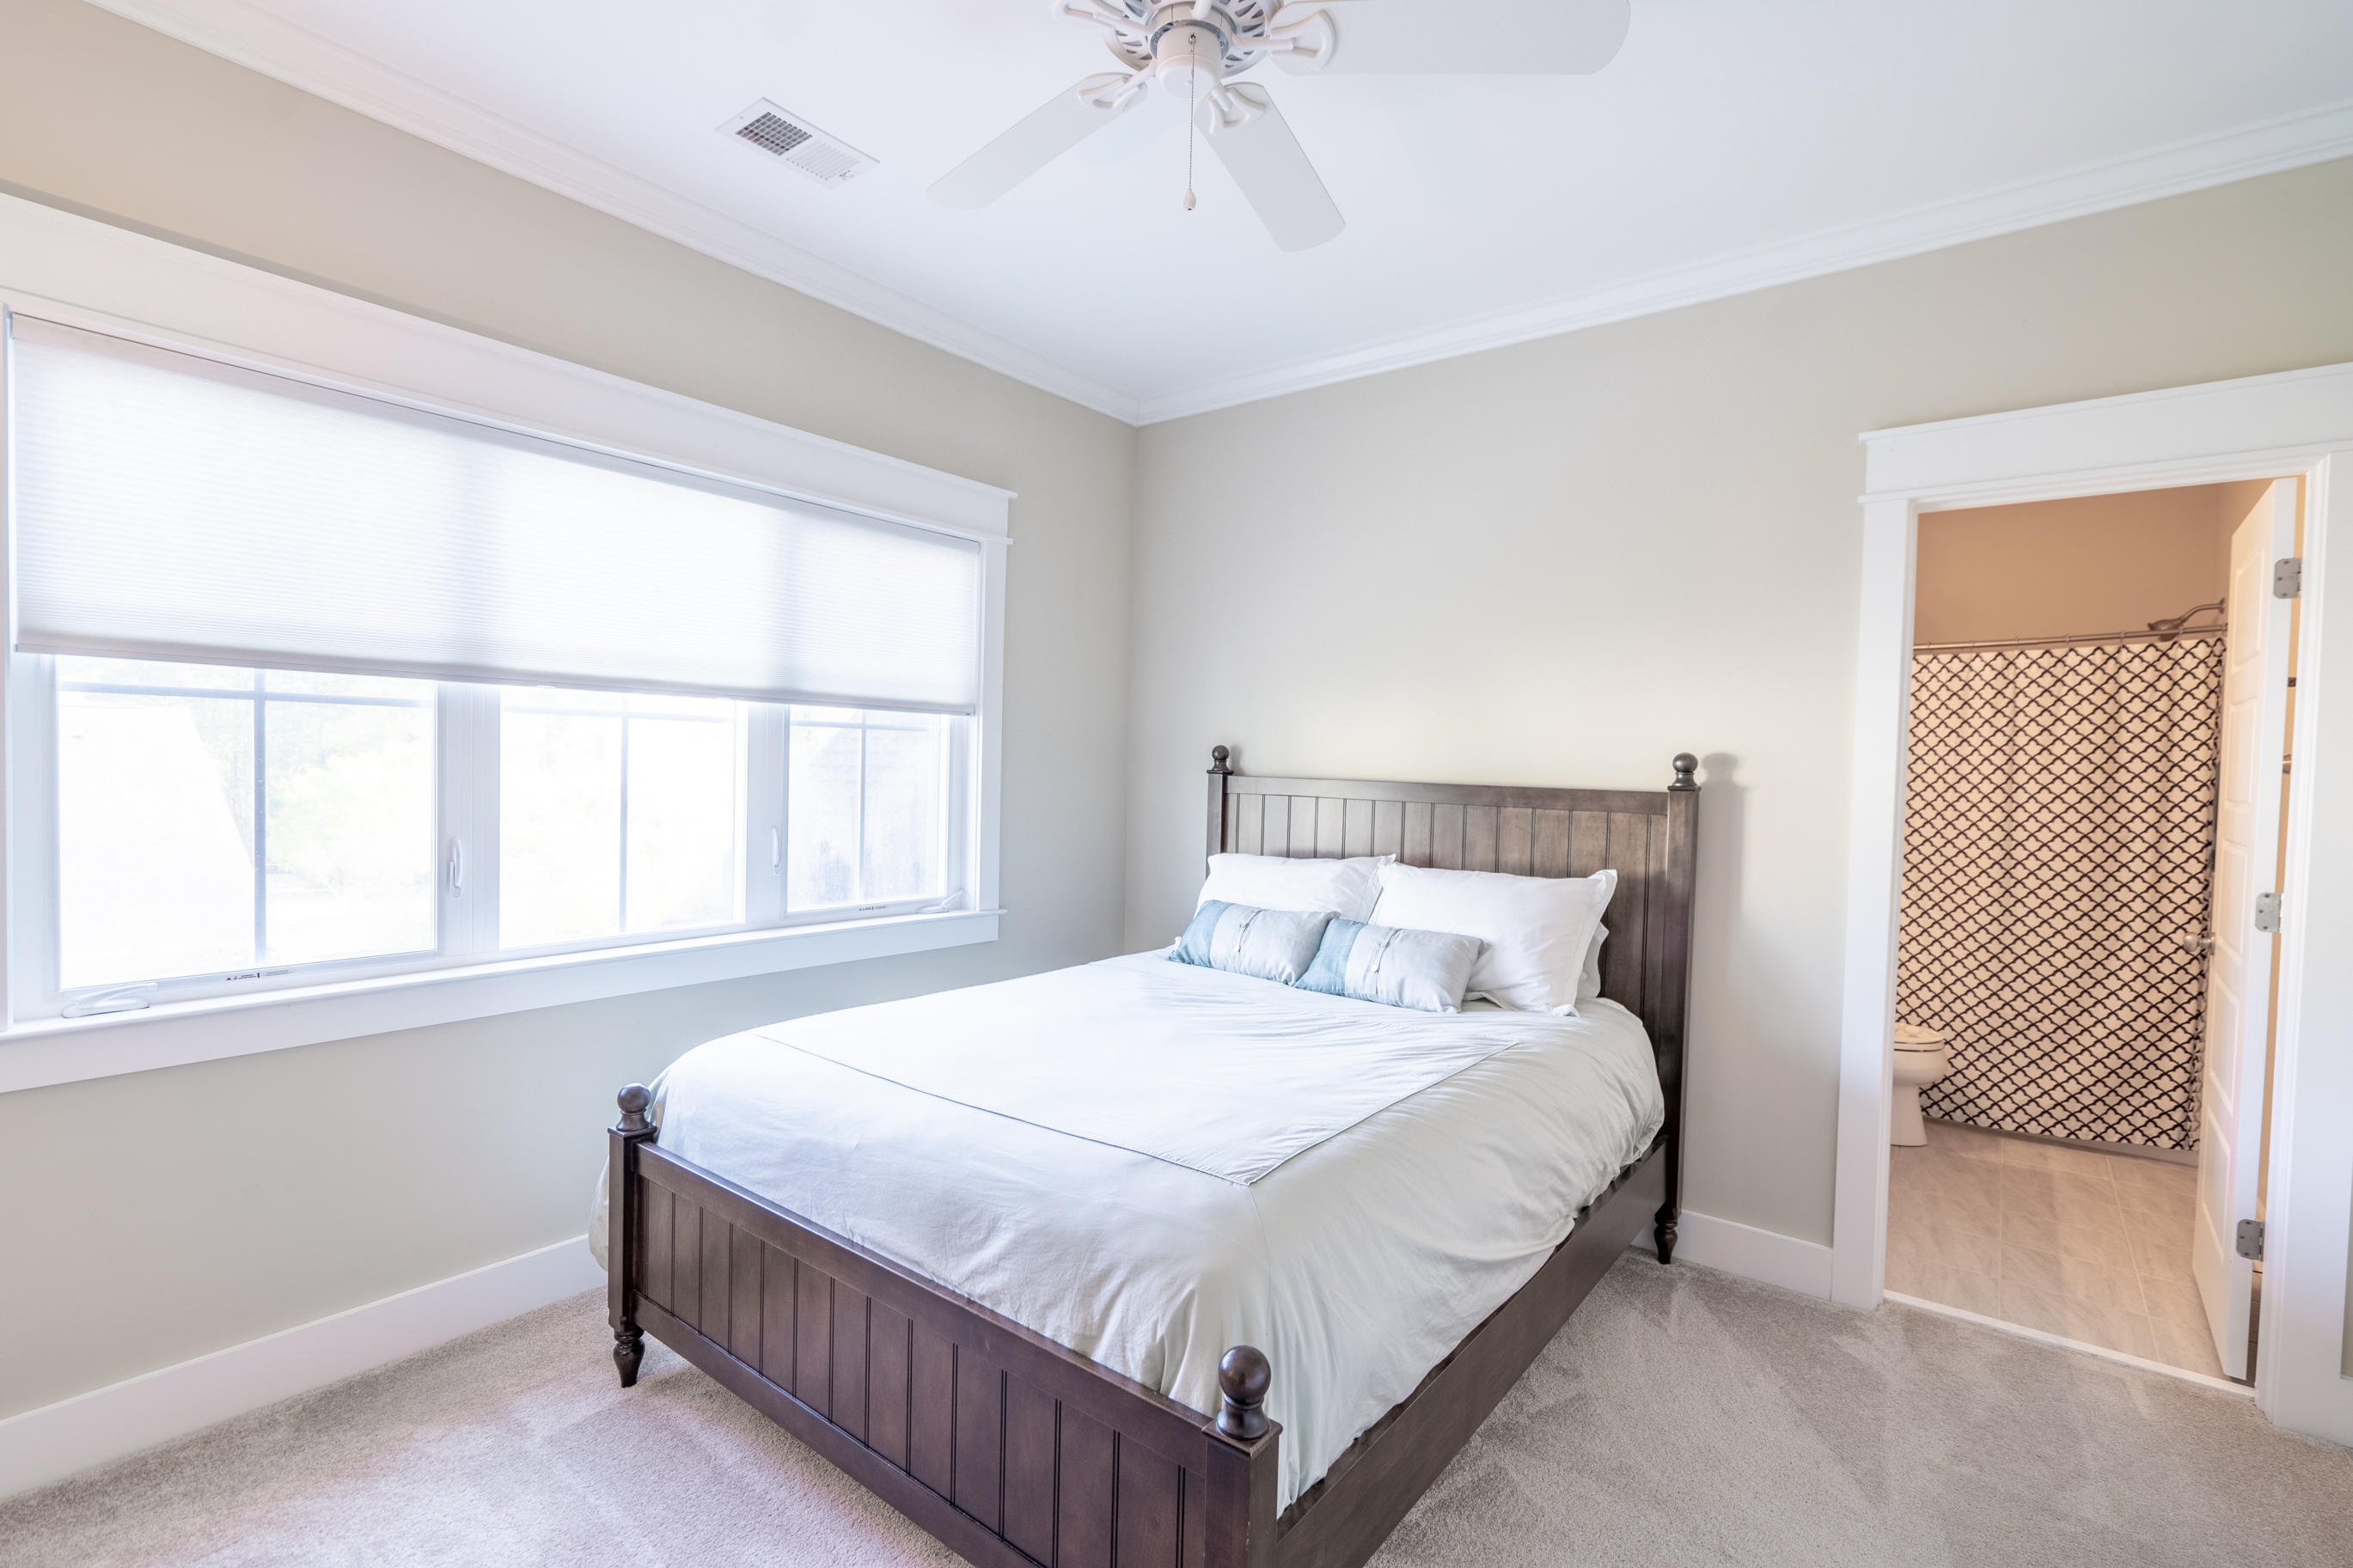 Rivertowne On The Wando Homes For Sale - 2608 Alderly, Mount Pleasant, SC - 1